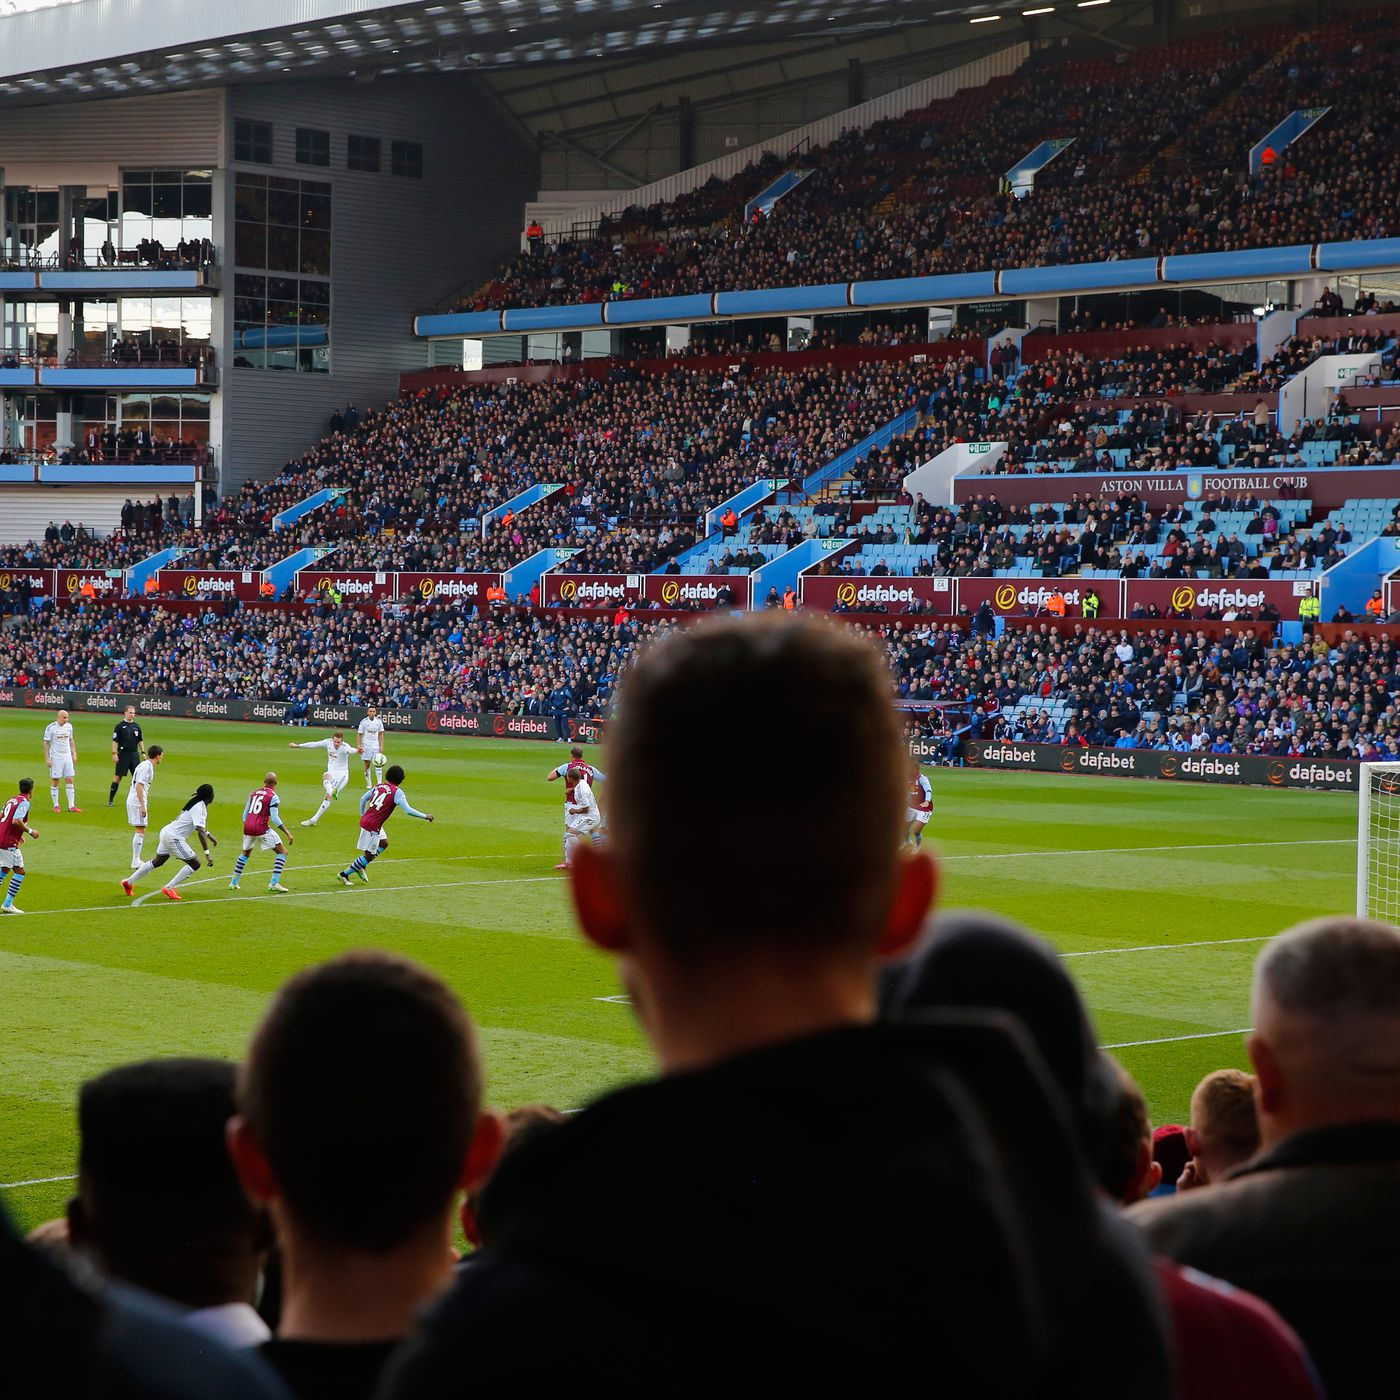 Aston Villa Adding More Disabled Seating Isn T Just The Right Thing It S A Legal Obligation 7500 To Holte